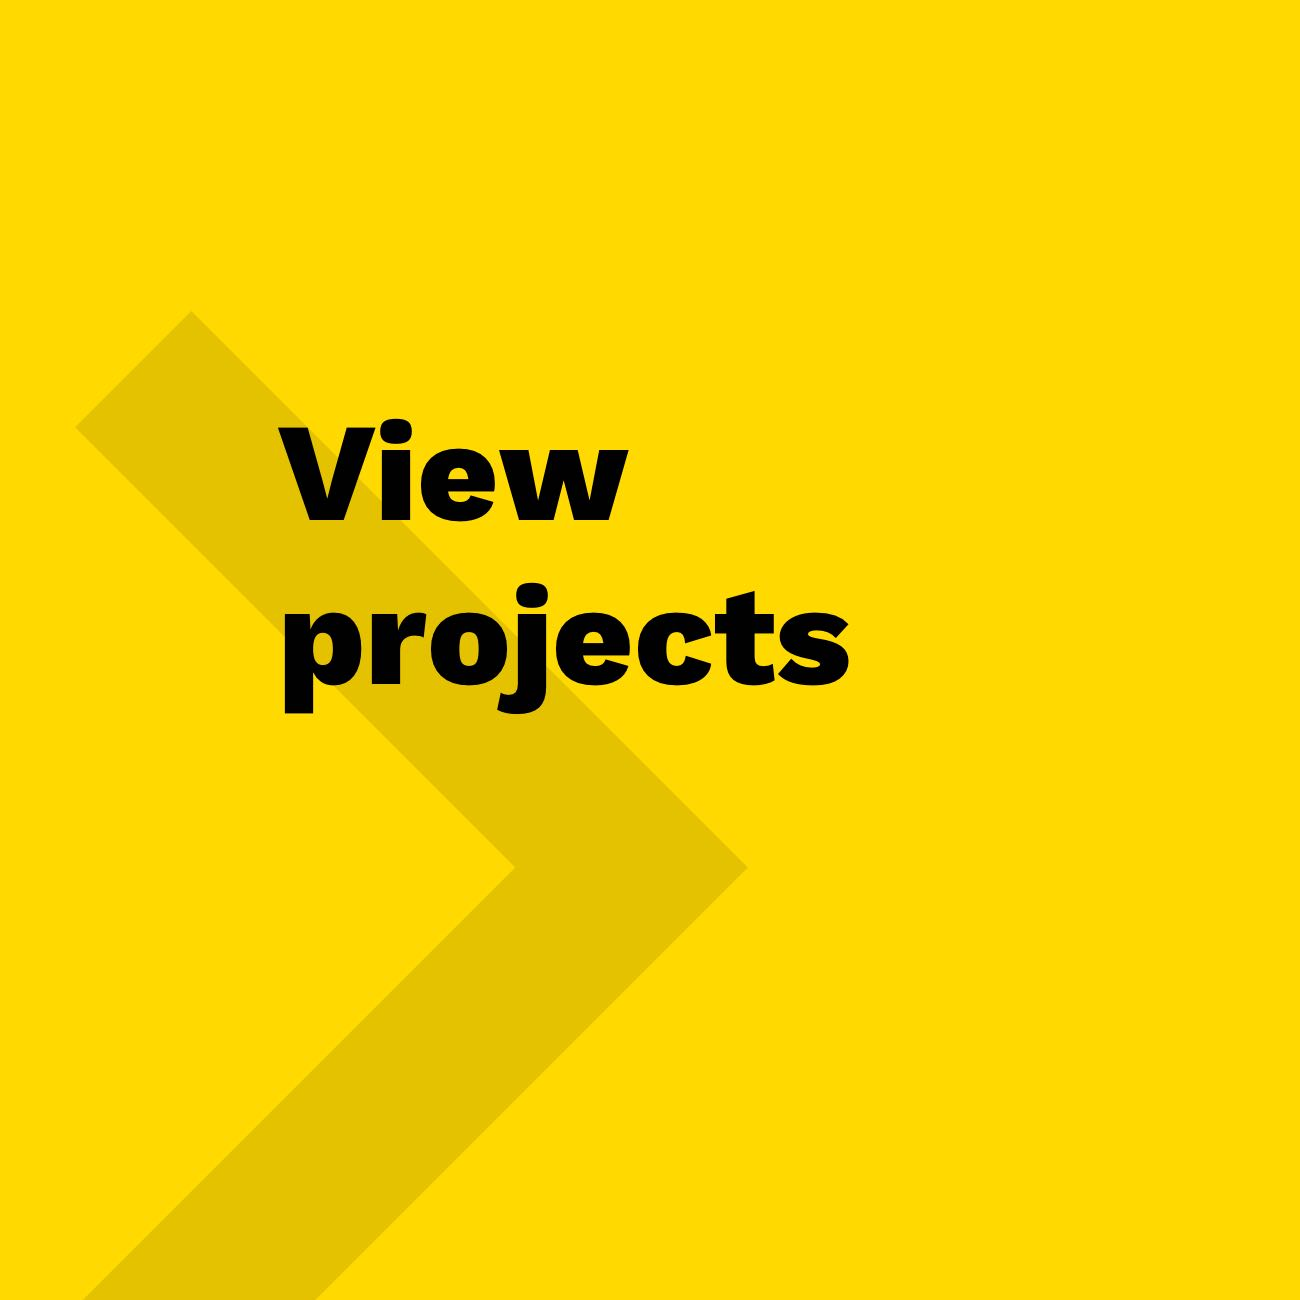 airline-banking-ecommerce-product-design-ux-ui-view-projects